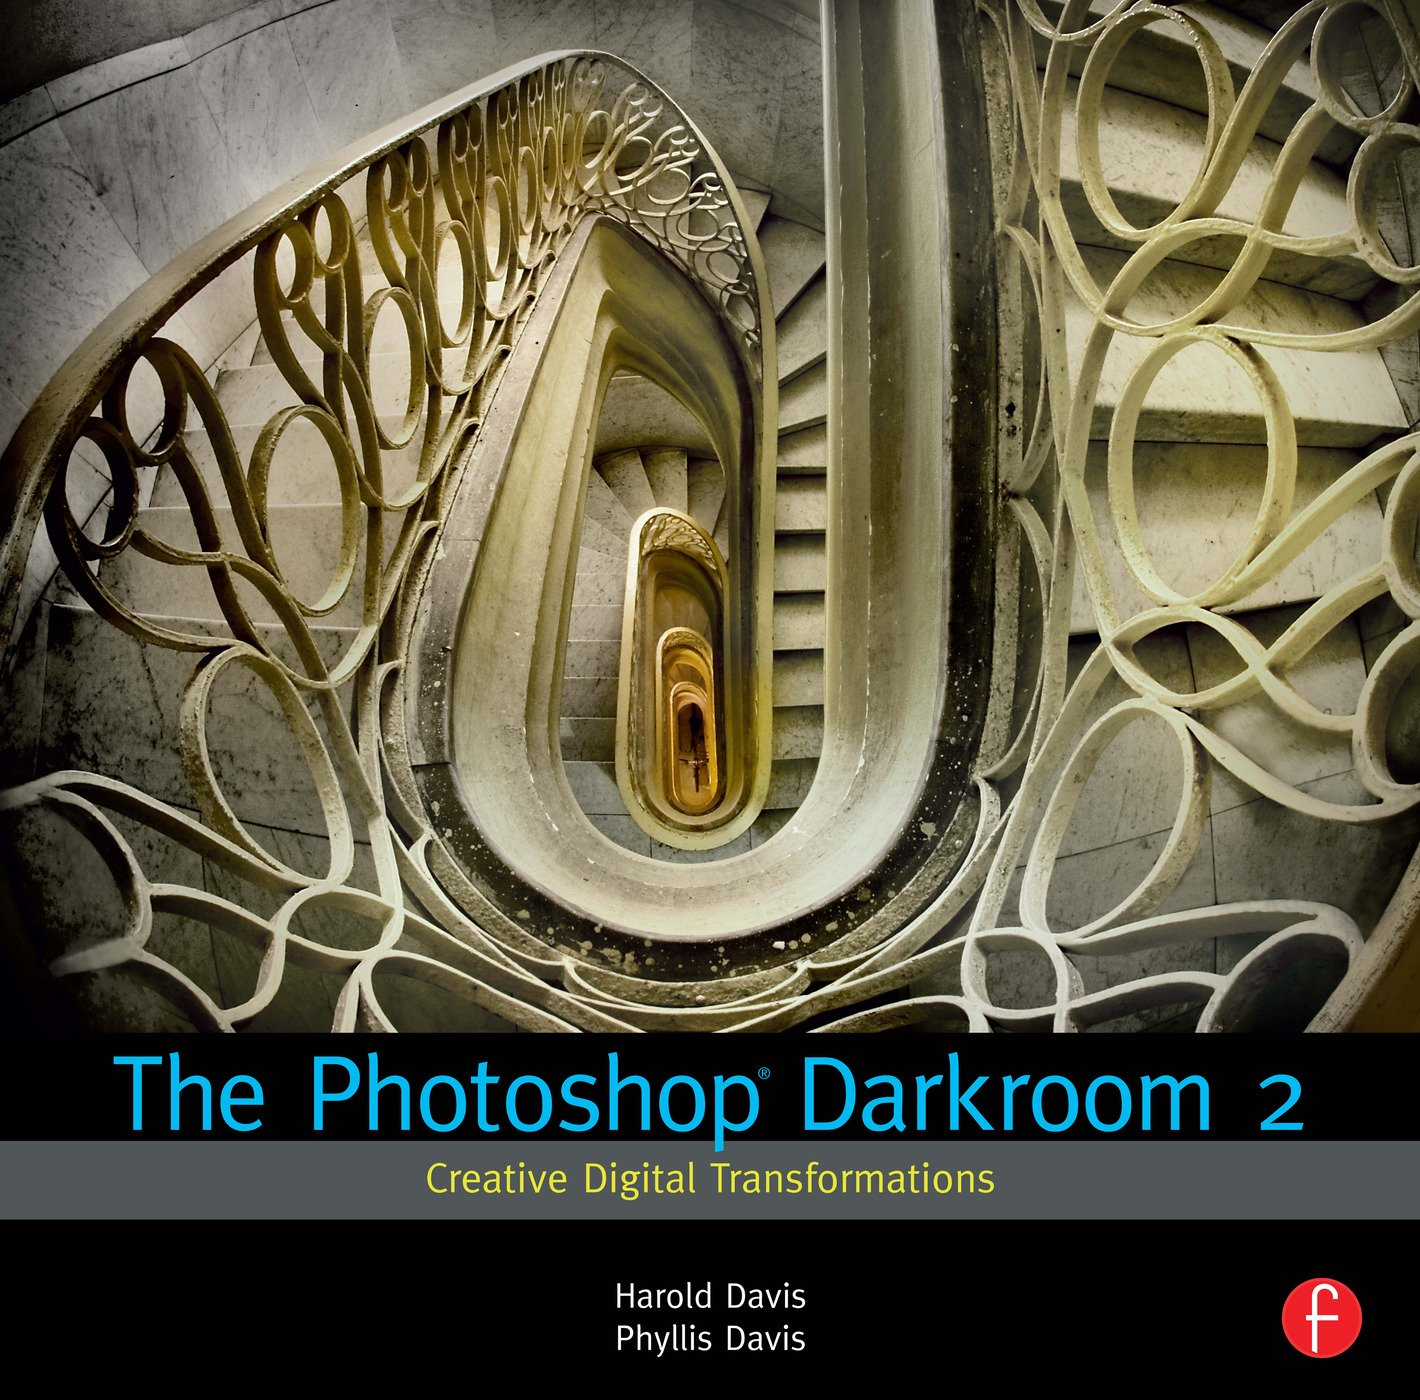 The Photoshop Darkroom 2: Creative Digital Transformations book cover